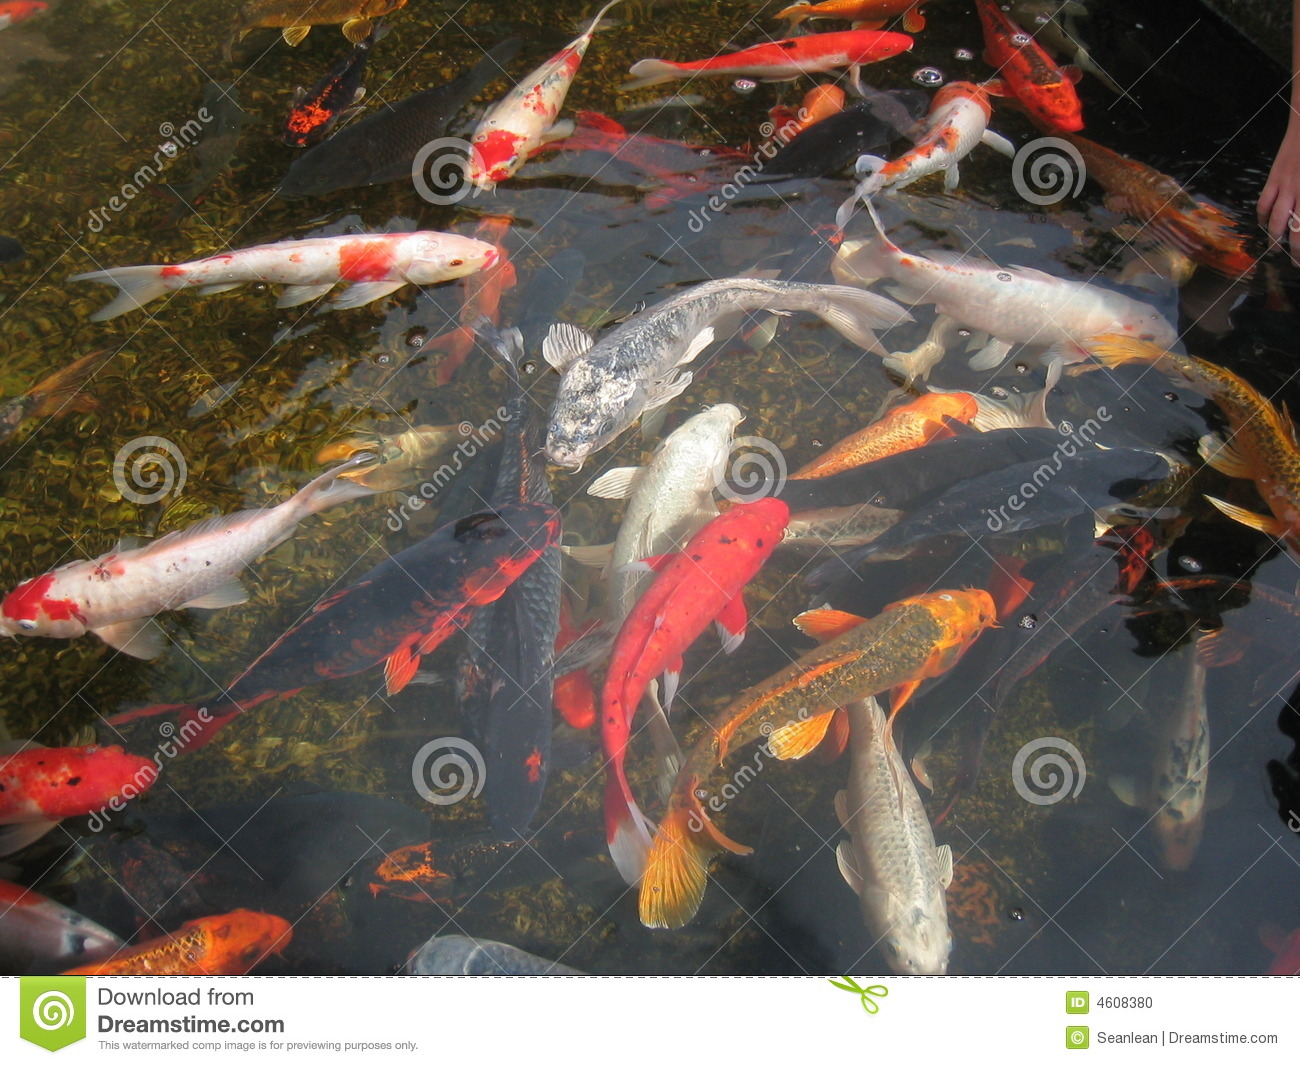 Koi fish in pond stock photo image 4608380 for Koi fish in pool